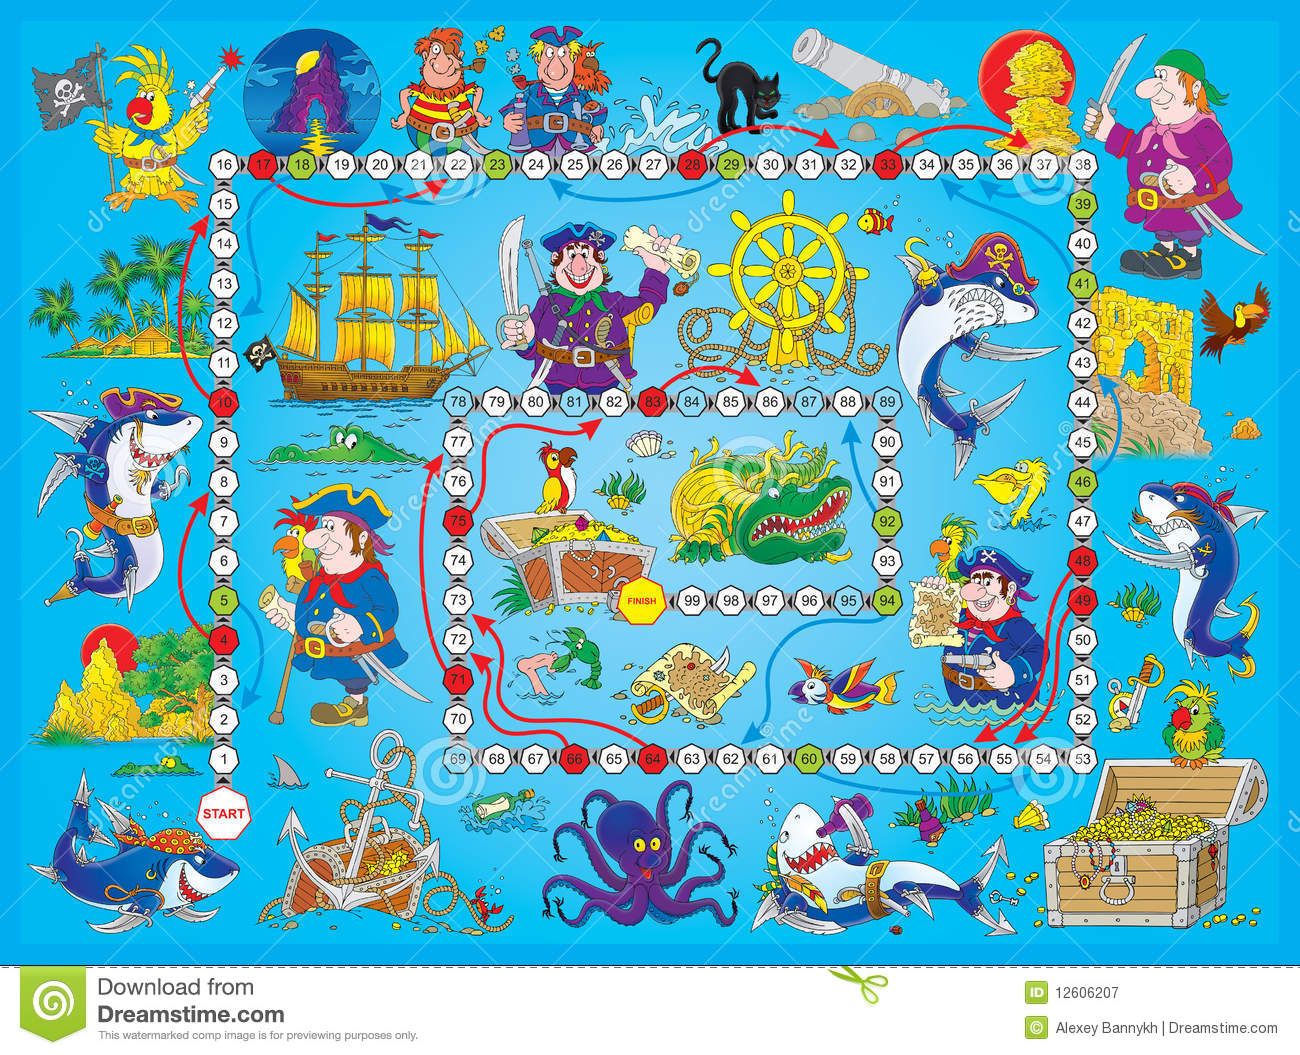 Royalty Free Stock Photography Board Game Pirates Image12606207 on Kindergarten Worksheet With U